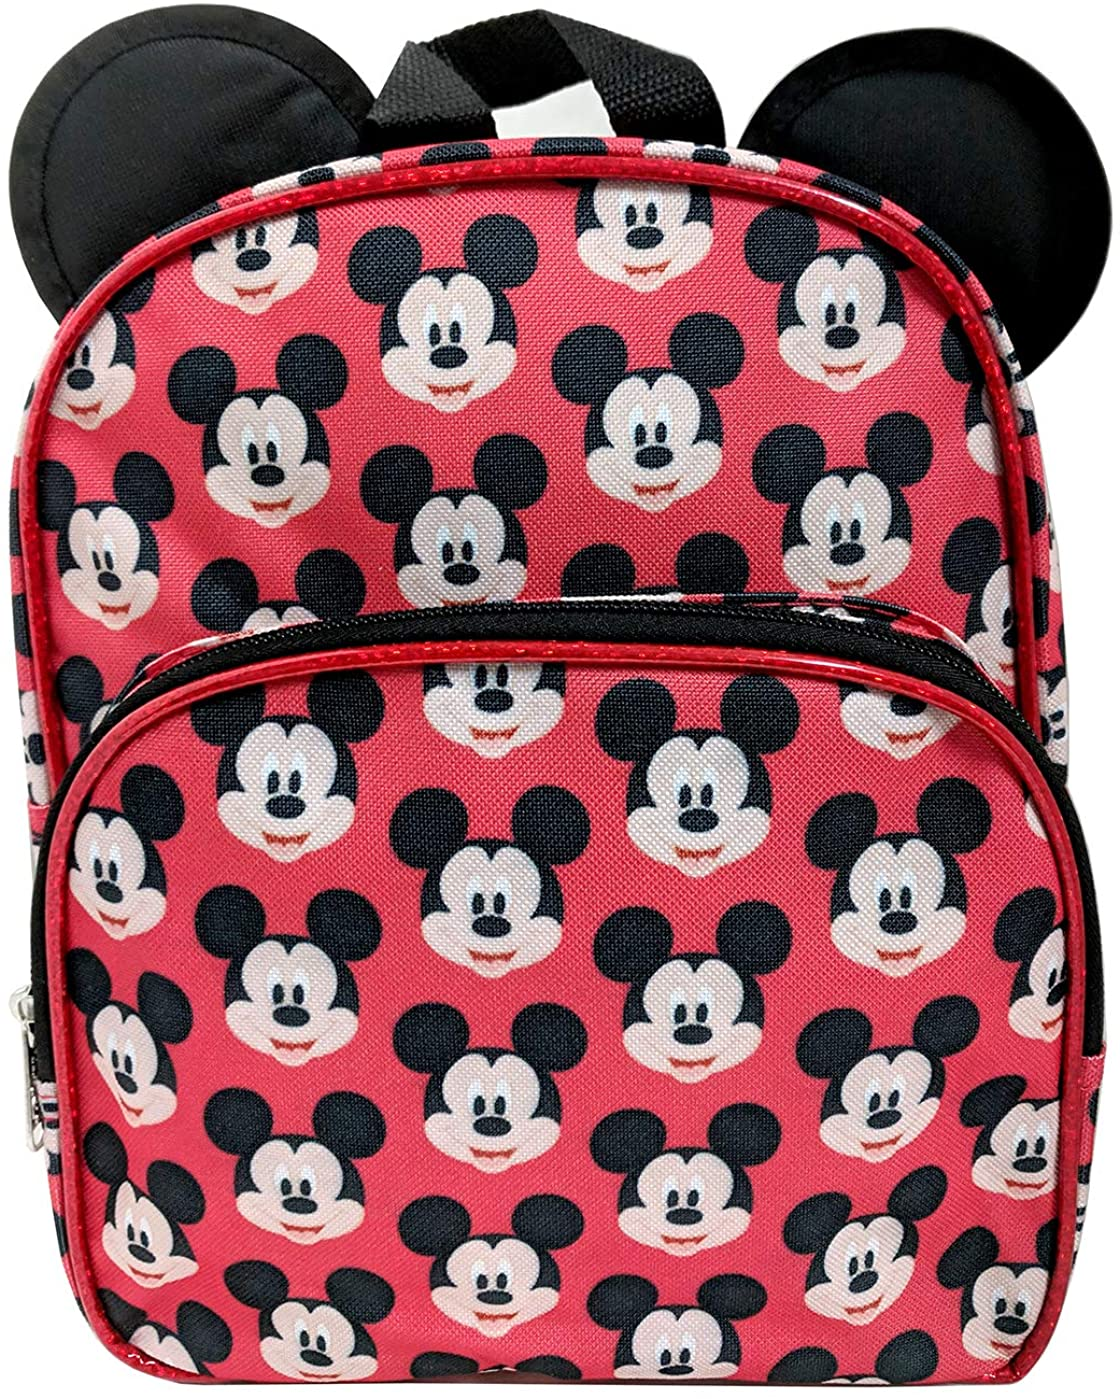 Disney Mickey Mouse Ear Mini Backpack - 10""